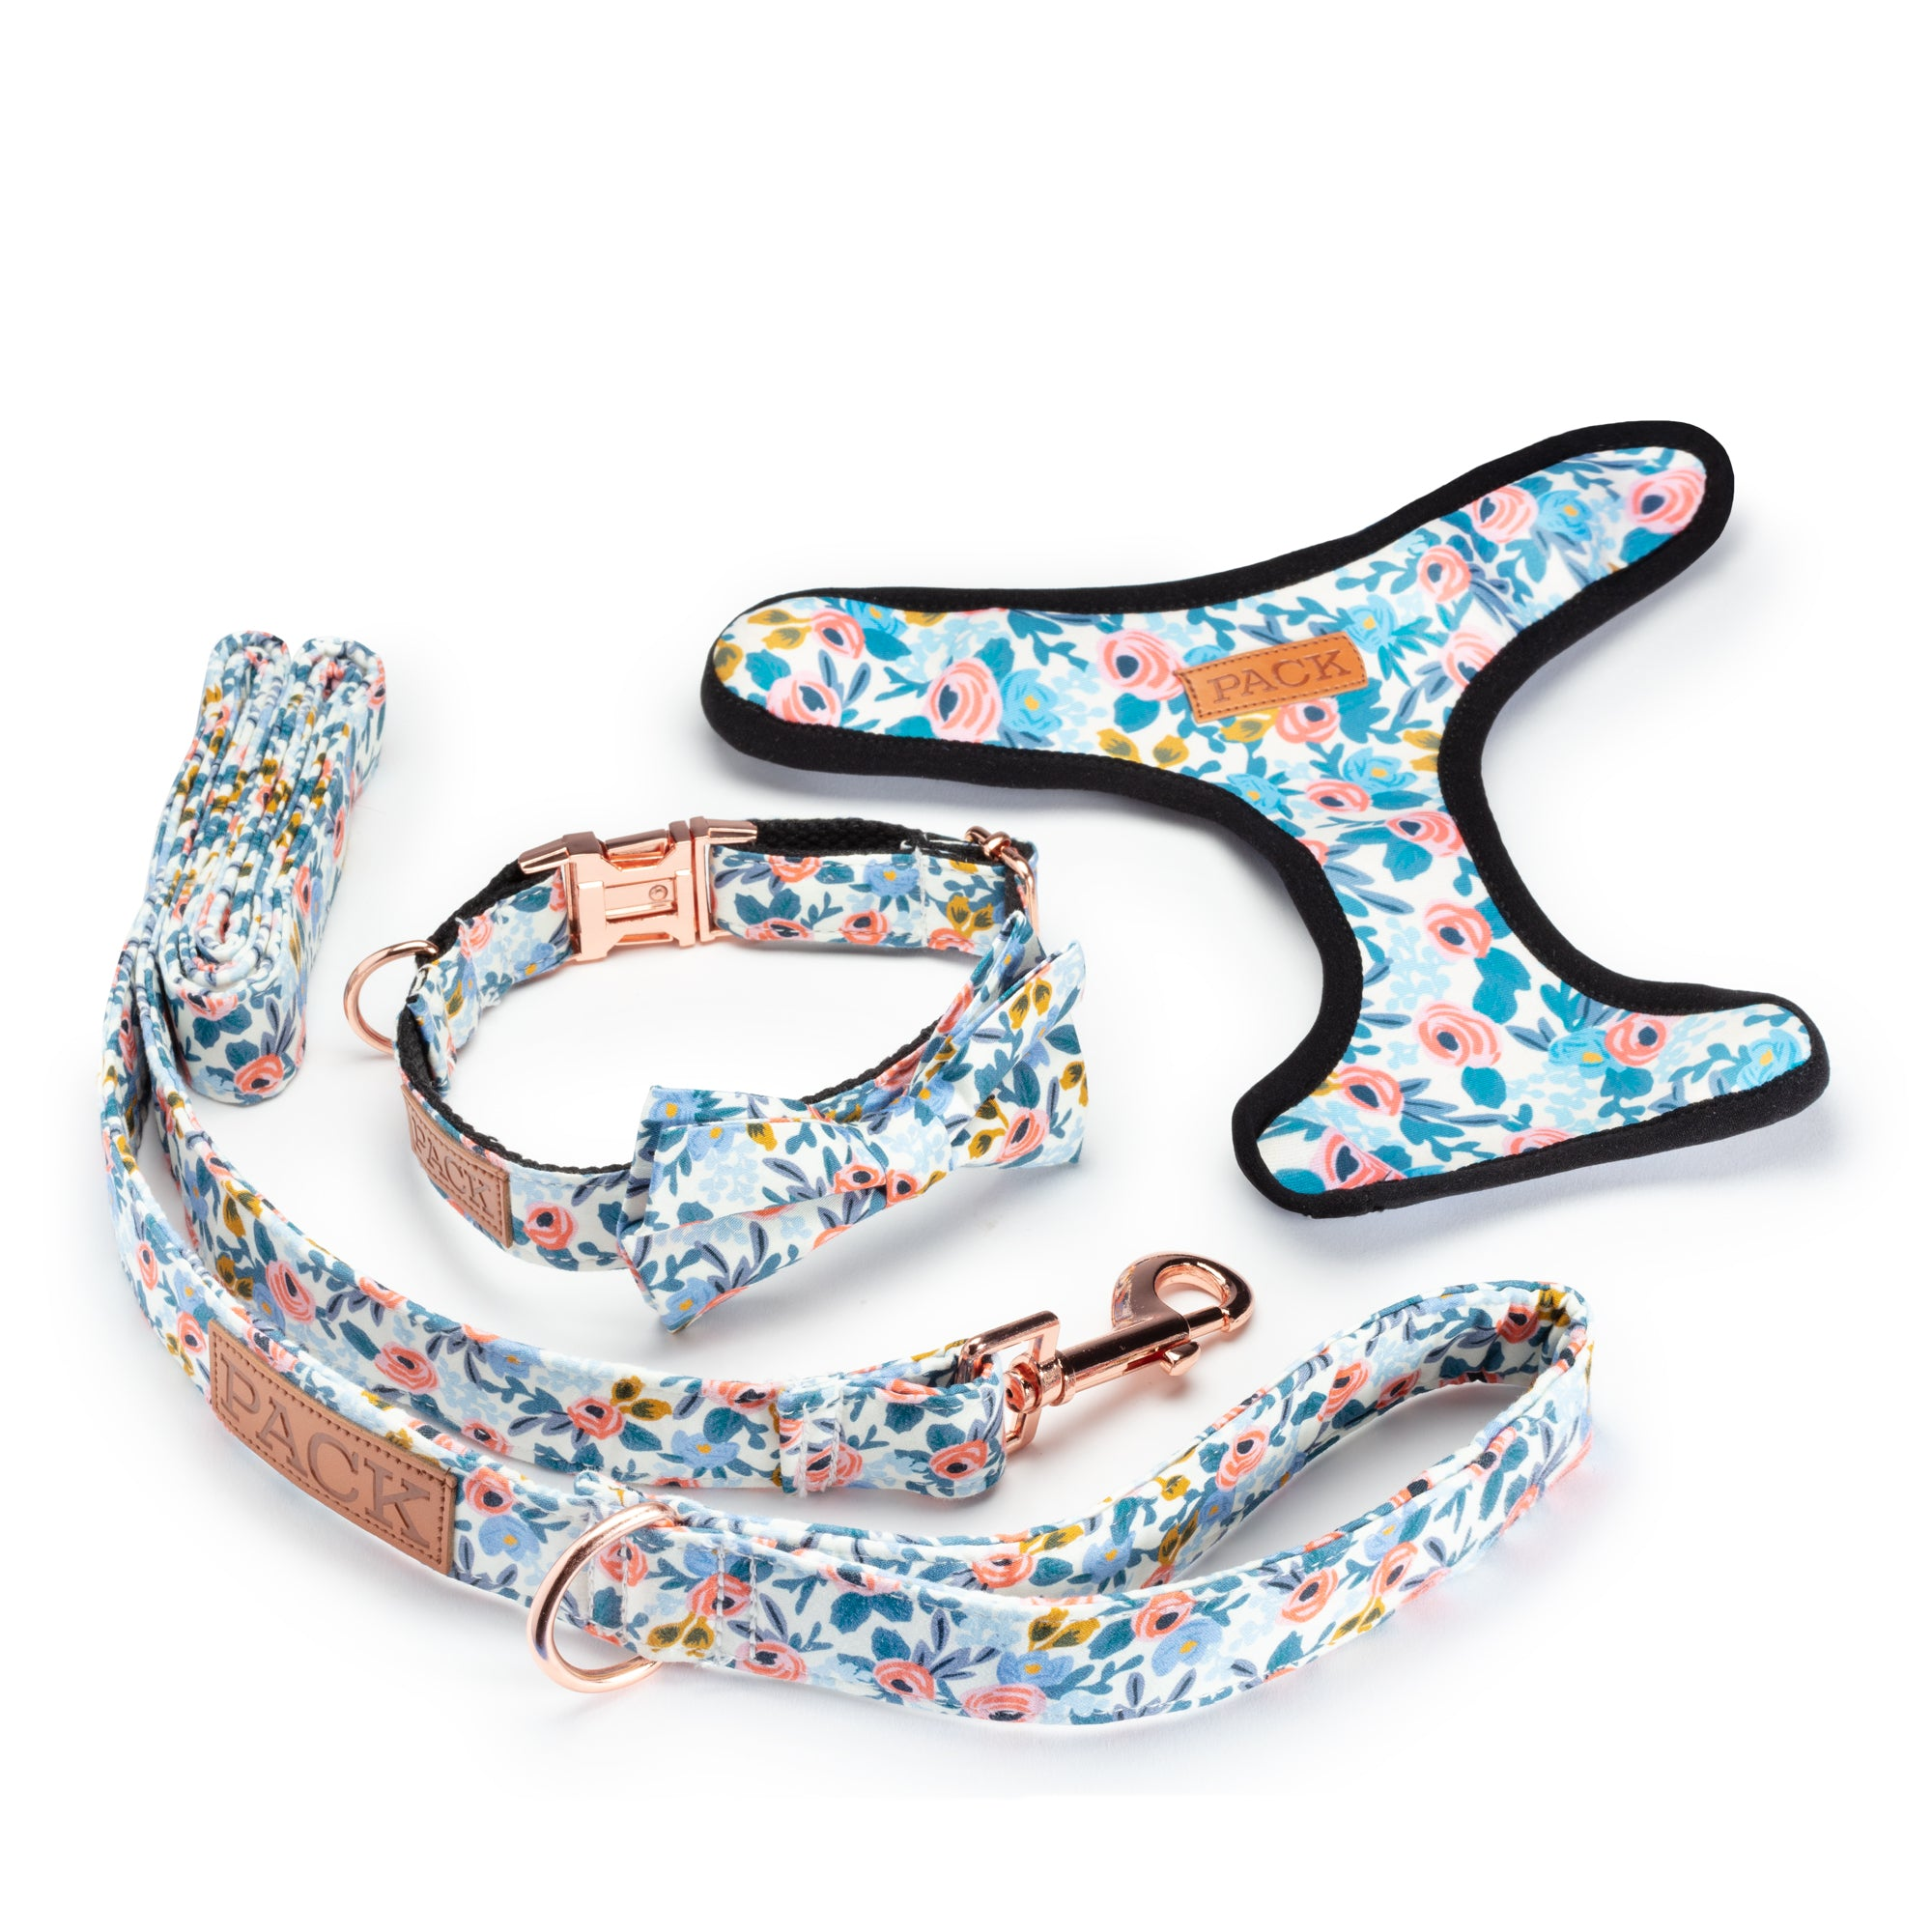 Rosé Leash + Bowtie Collar + Reversible Harness